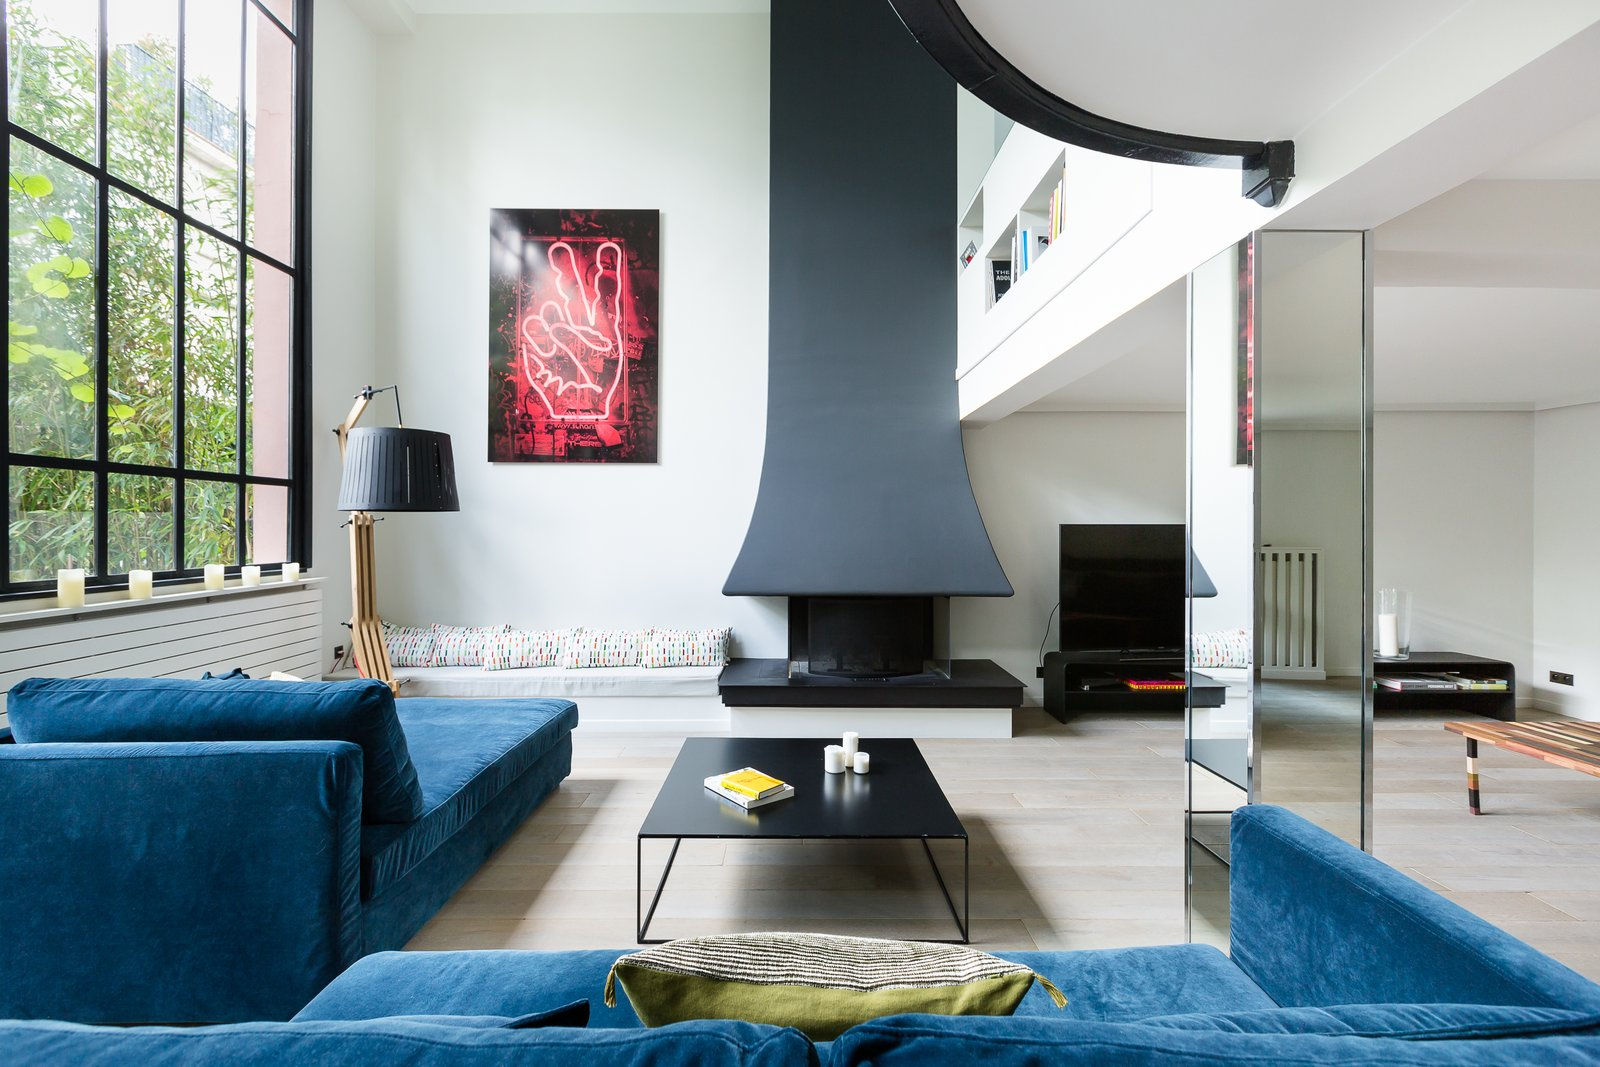 Living Room, Light Hardwood Floor, Bench, Standard Layout Fireplace, Floor Lighting, Sofa, Recliner, Coffee Tables, and Media Cabinet  Photo 3 of 11 in Channel Parisian Glamour With a Stay in This Striking Montmartre Townhouse